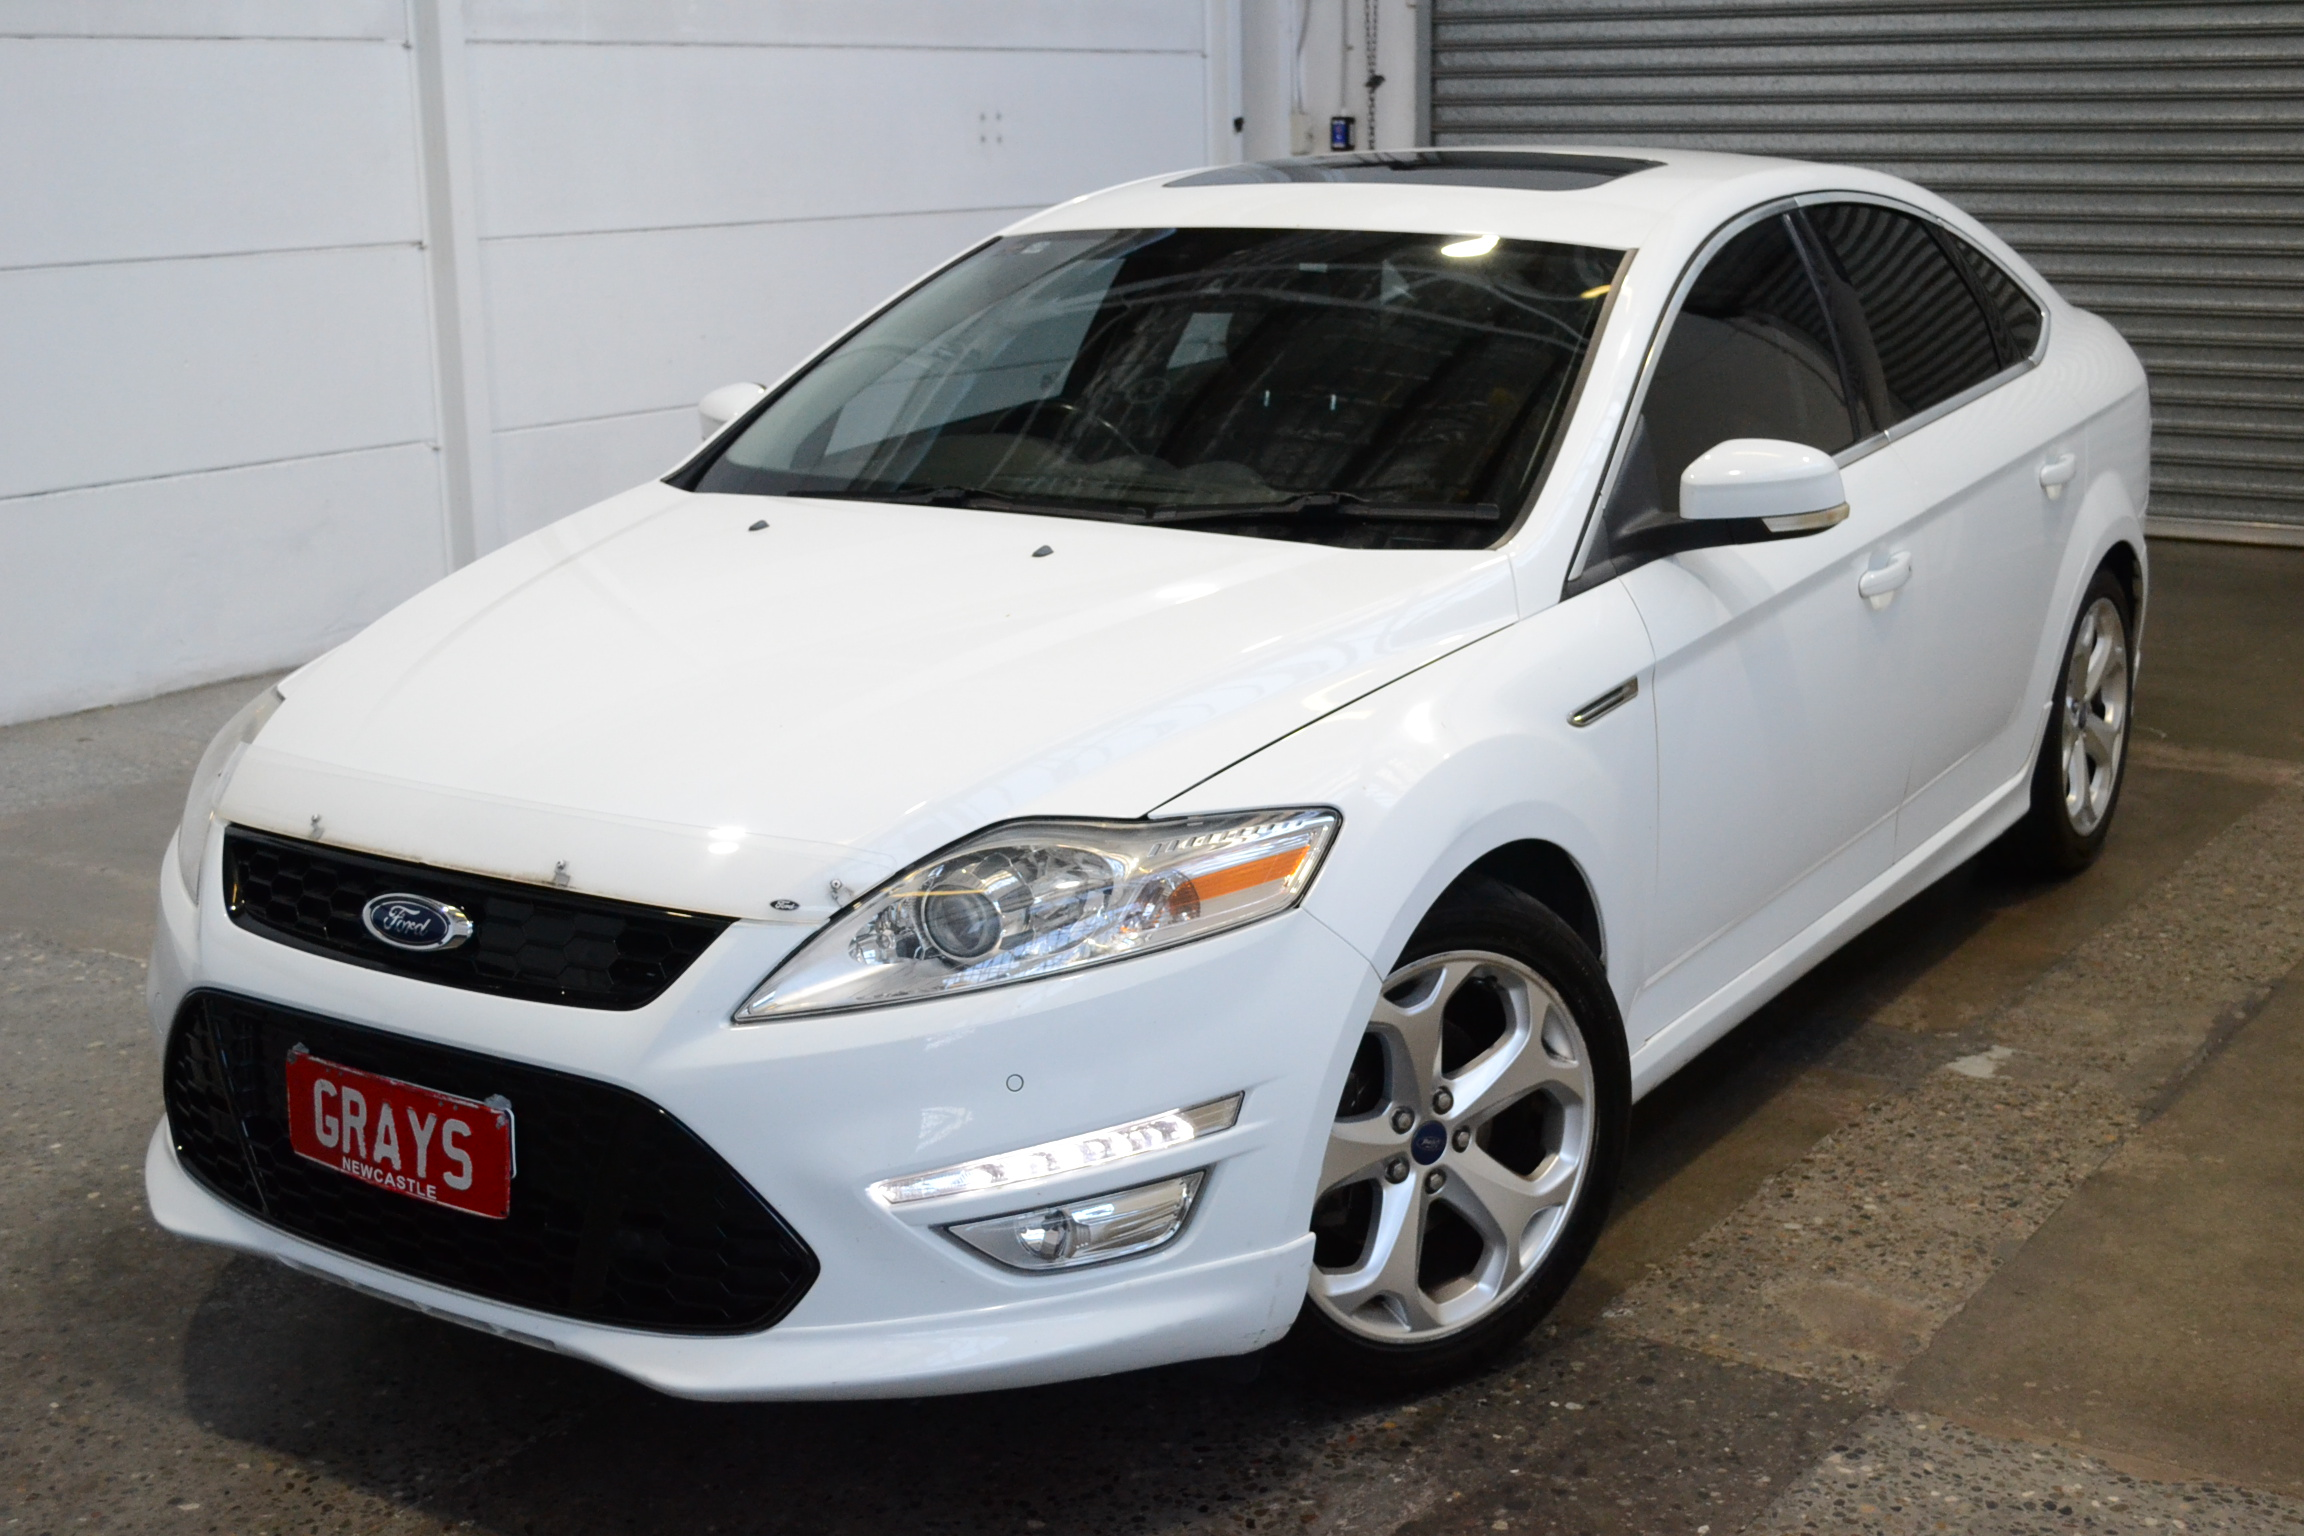 2012 Ford Mondeo Titanium TDCi MC Turbo Diesel Automatic Hatchback